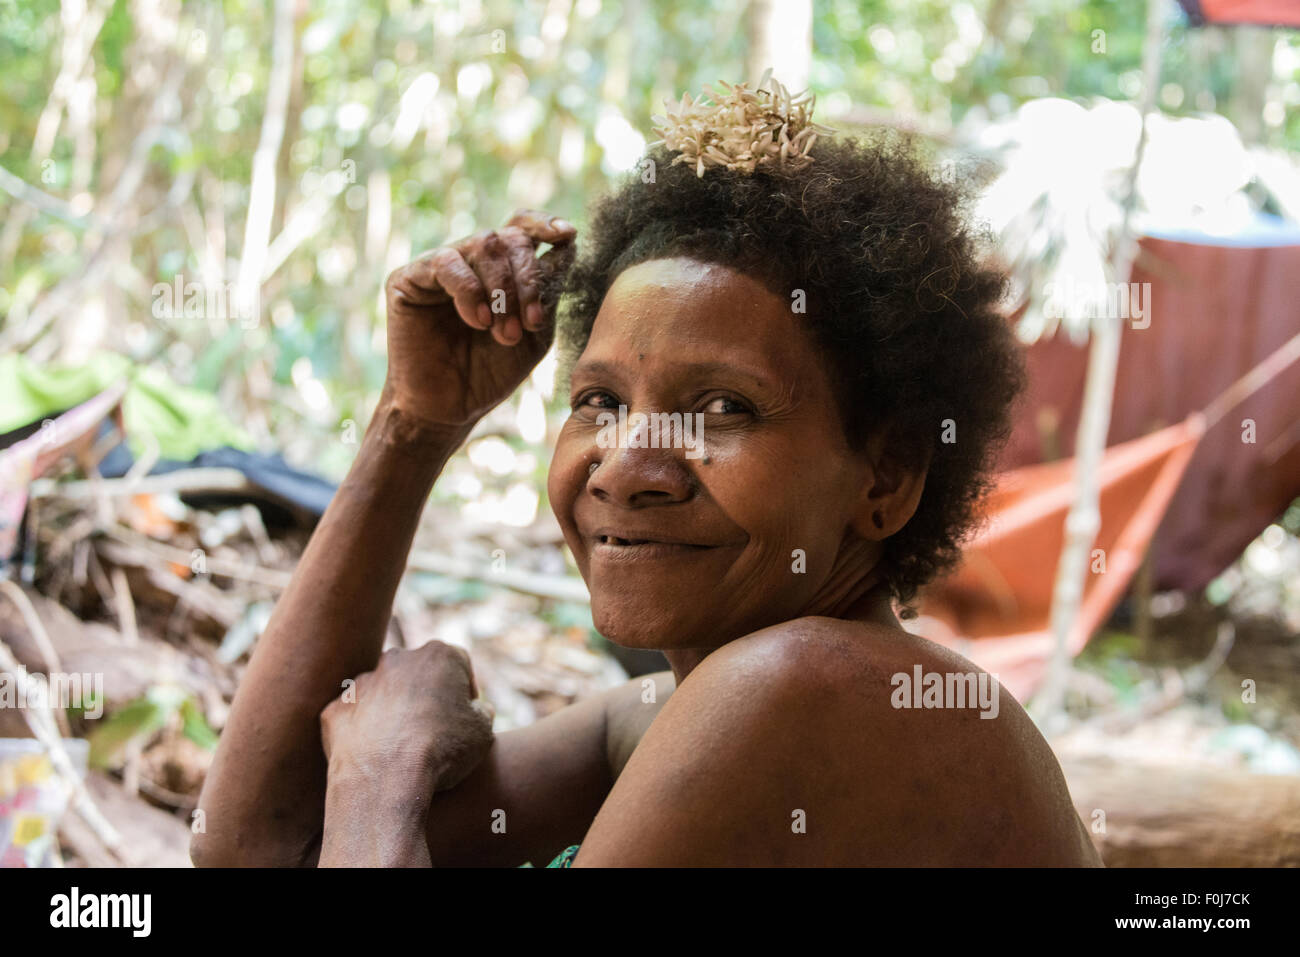 Woman of the Orang Asil tribe sitting in the jungle, portrait, Native, Indigenous Volk, tropical rain forest - Stock Image